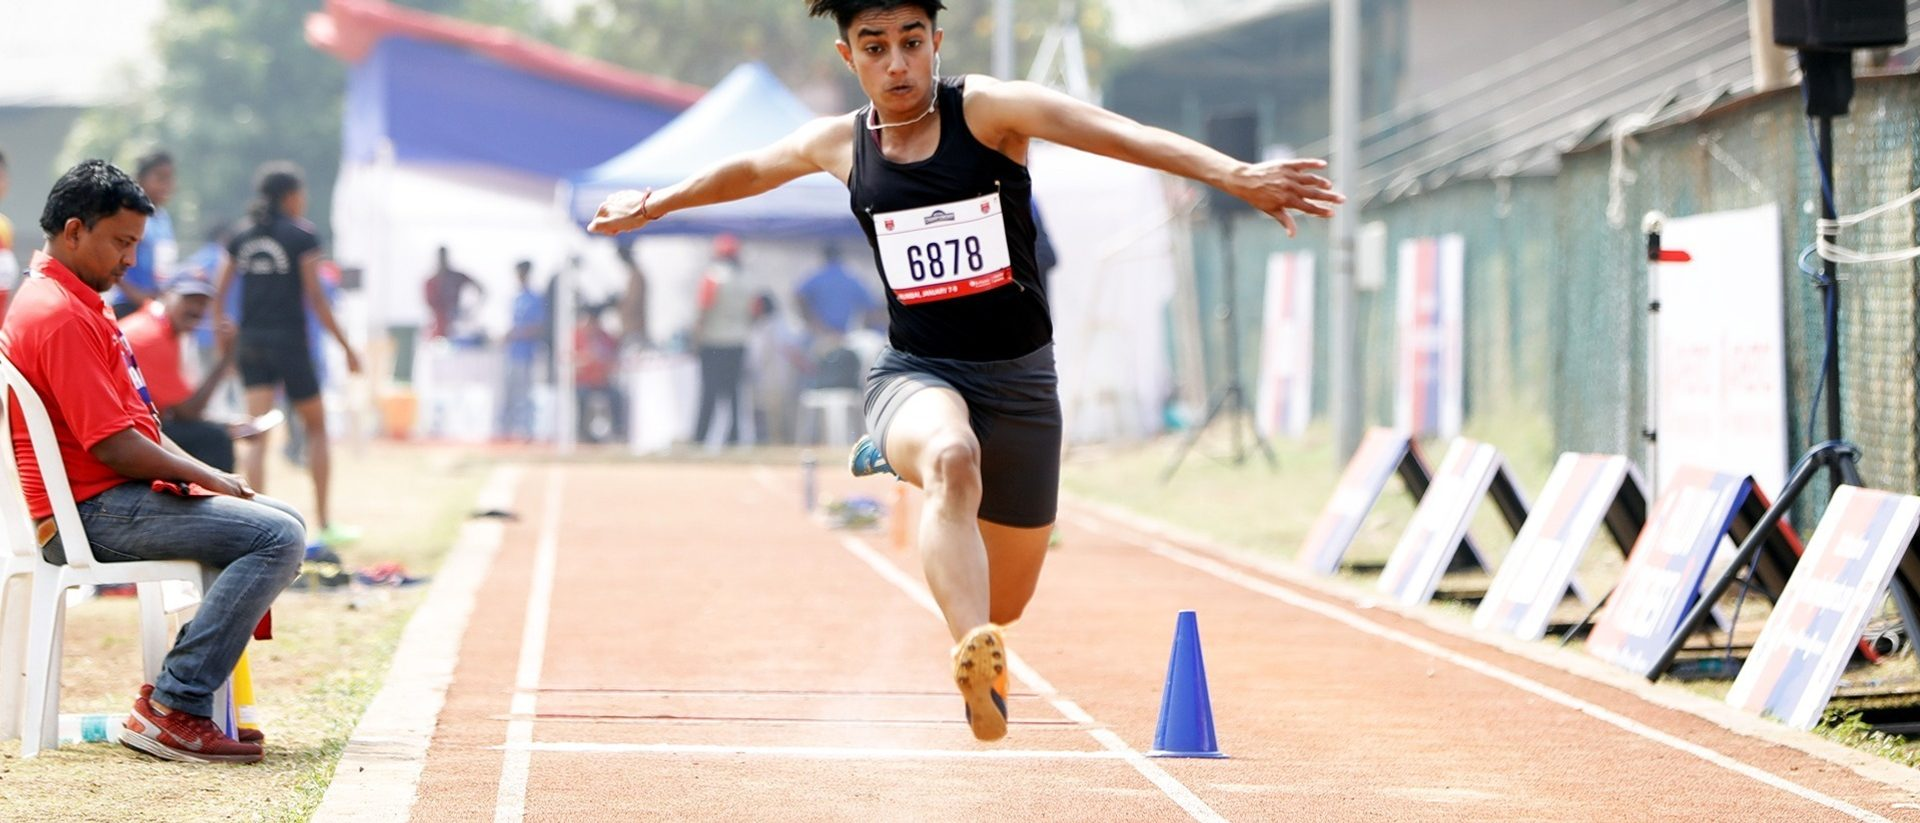 RFYS Athletics National Championship 2019-20, Day One Recap, Part 2